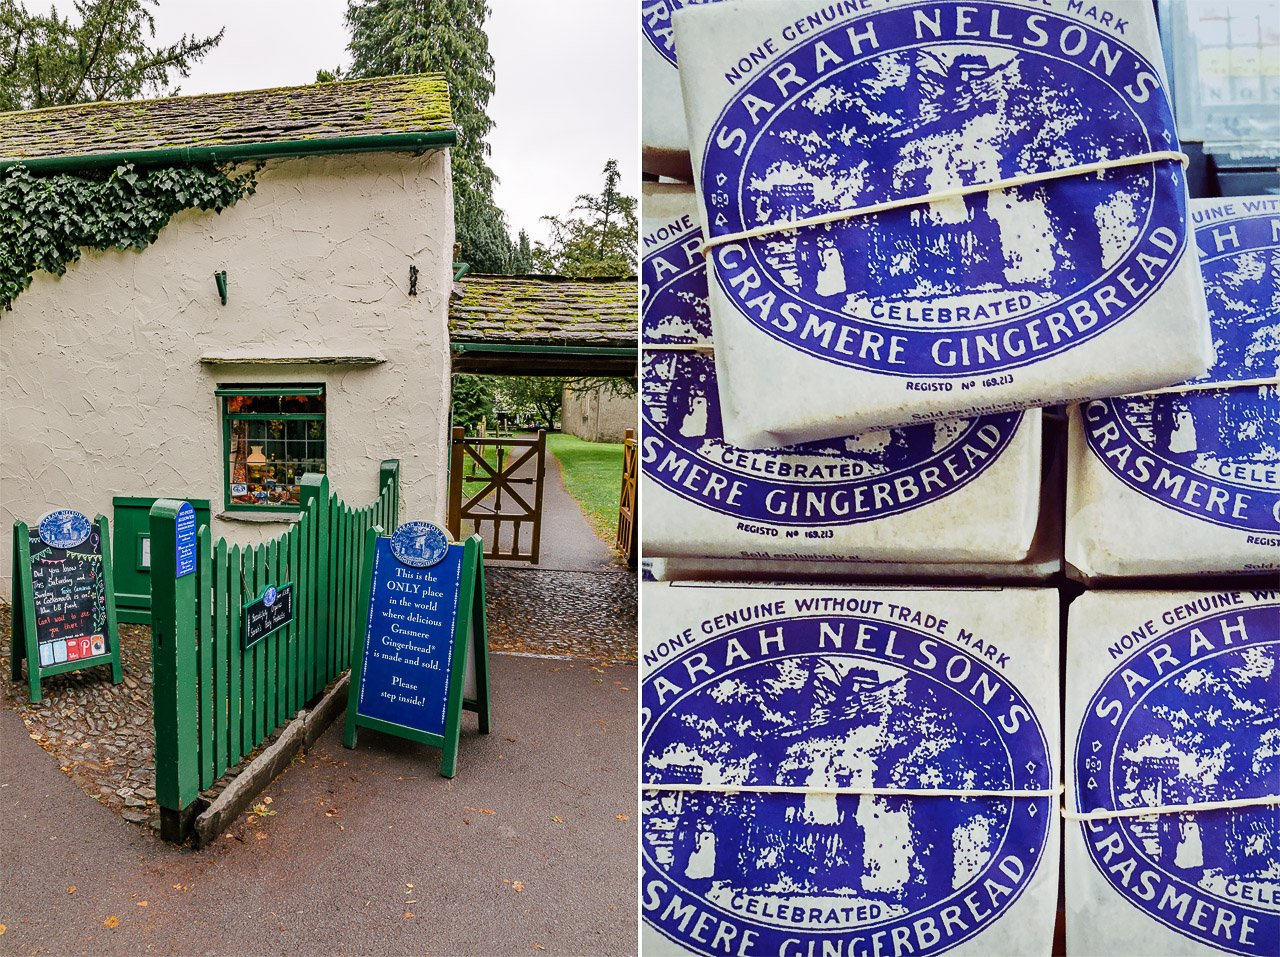 Sarah Nelson's Grasmere Gingerbread Shop, Lake District, England | Travel Guide by HonestlyYUM